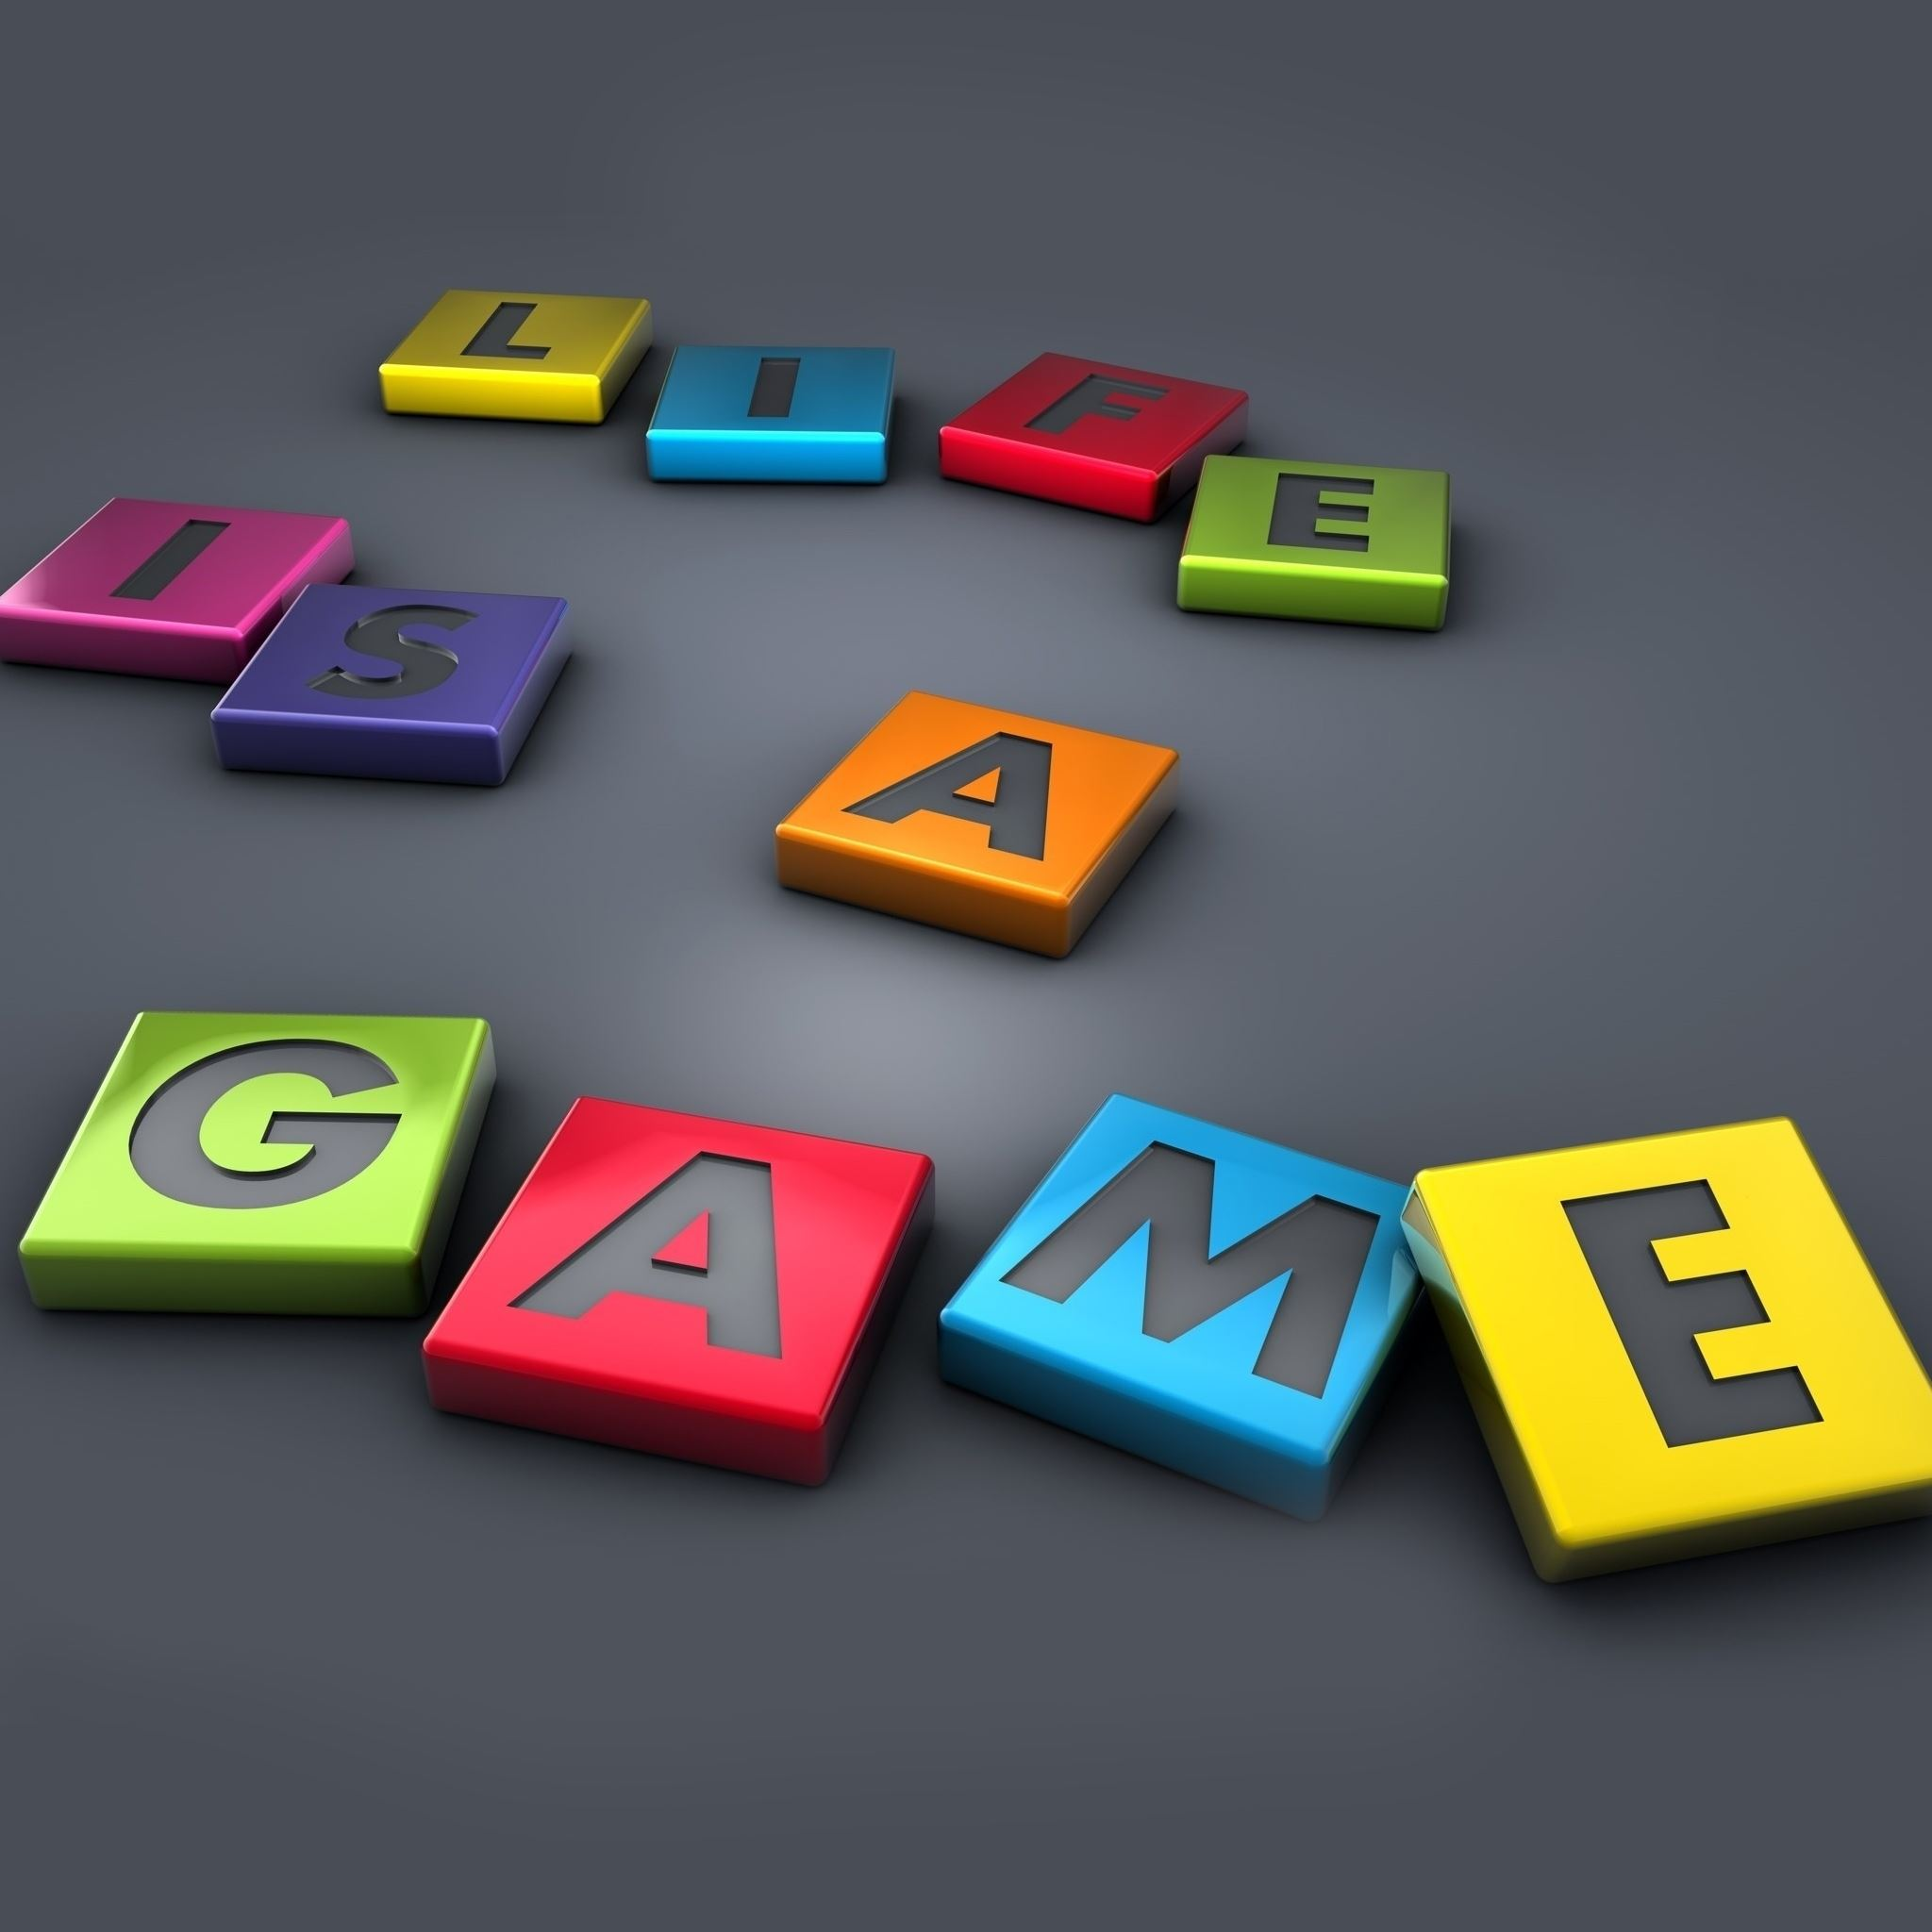 Life is a Game iPad Air wallpaper